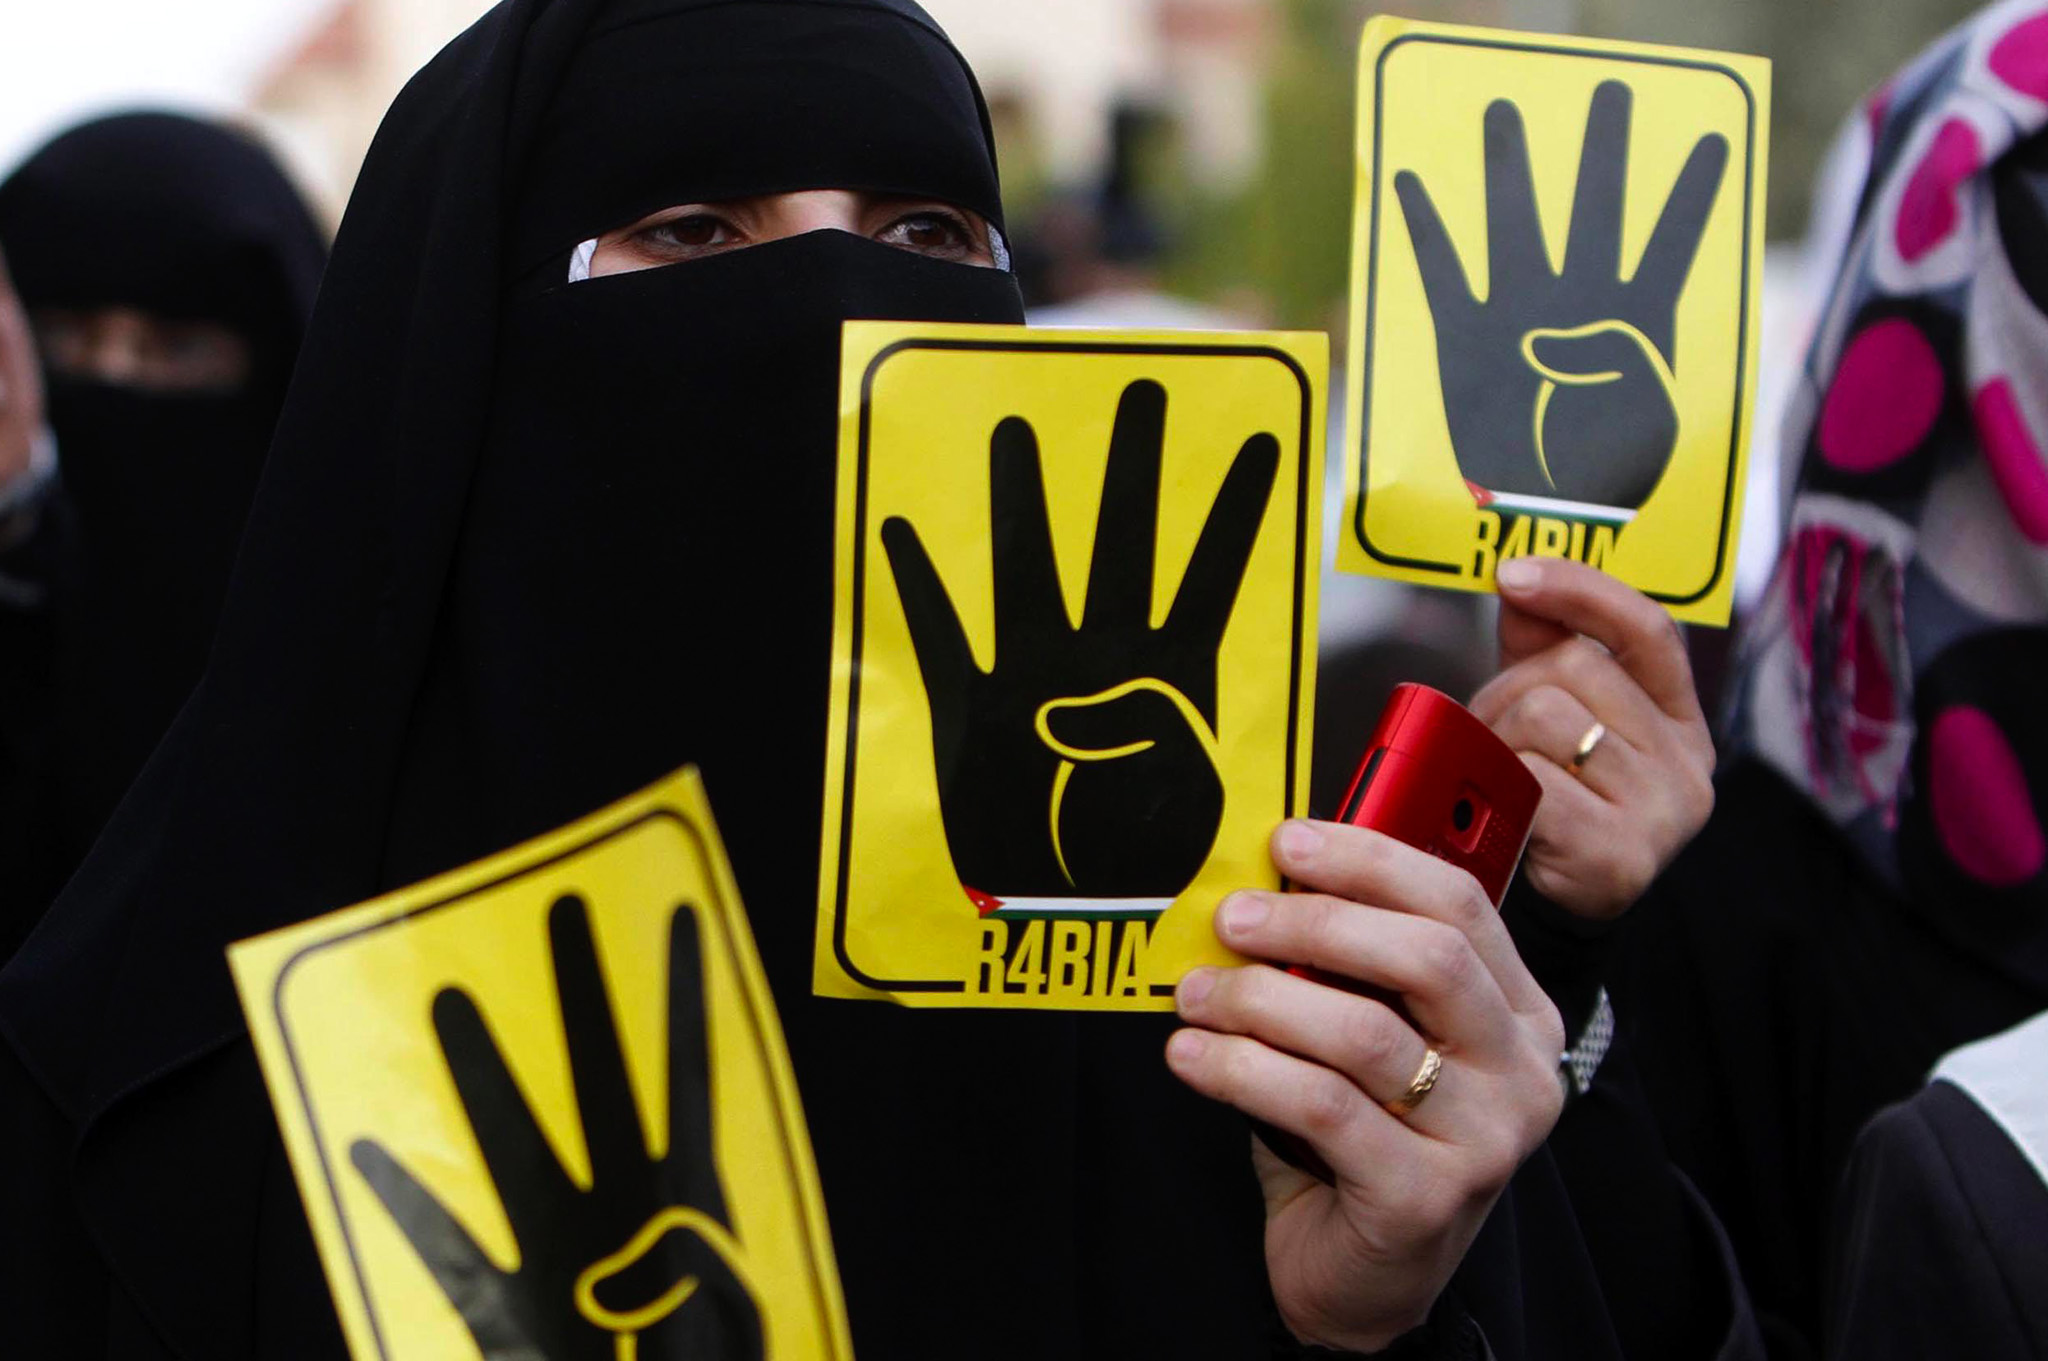 Jordanian women from Islamic Movements hold placards depicting the four-finger salute during a protest against the trial of the ousted Egyptian President Mohamed Morsi, in front of Egyptian embassy in Amman, Jordan.